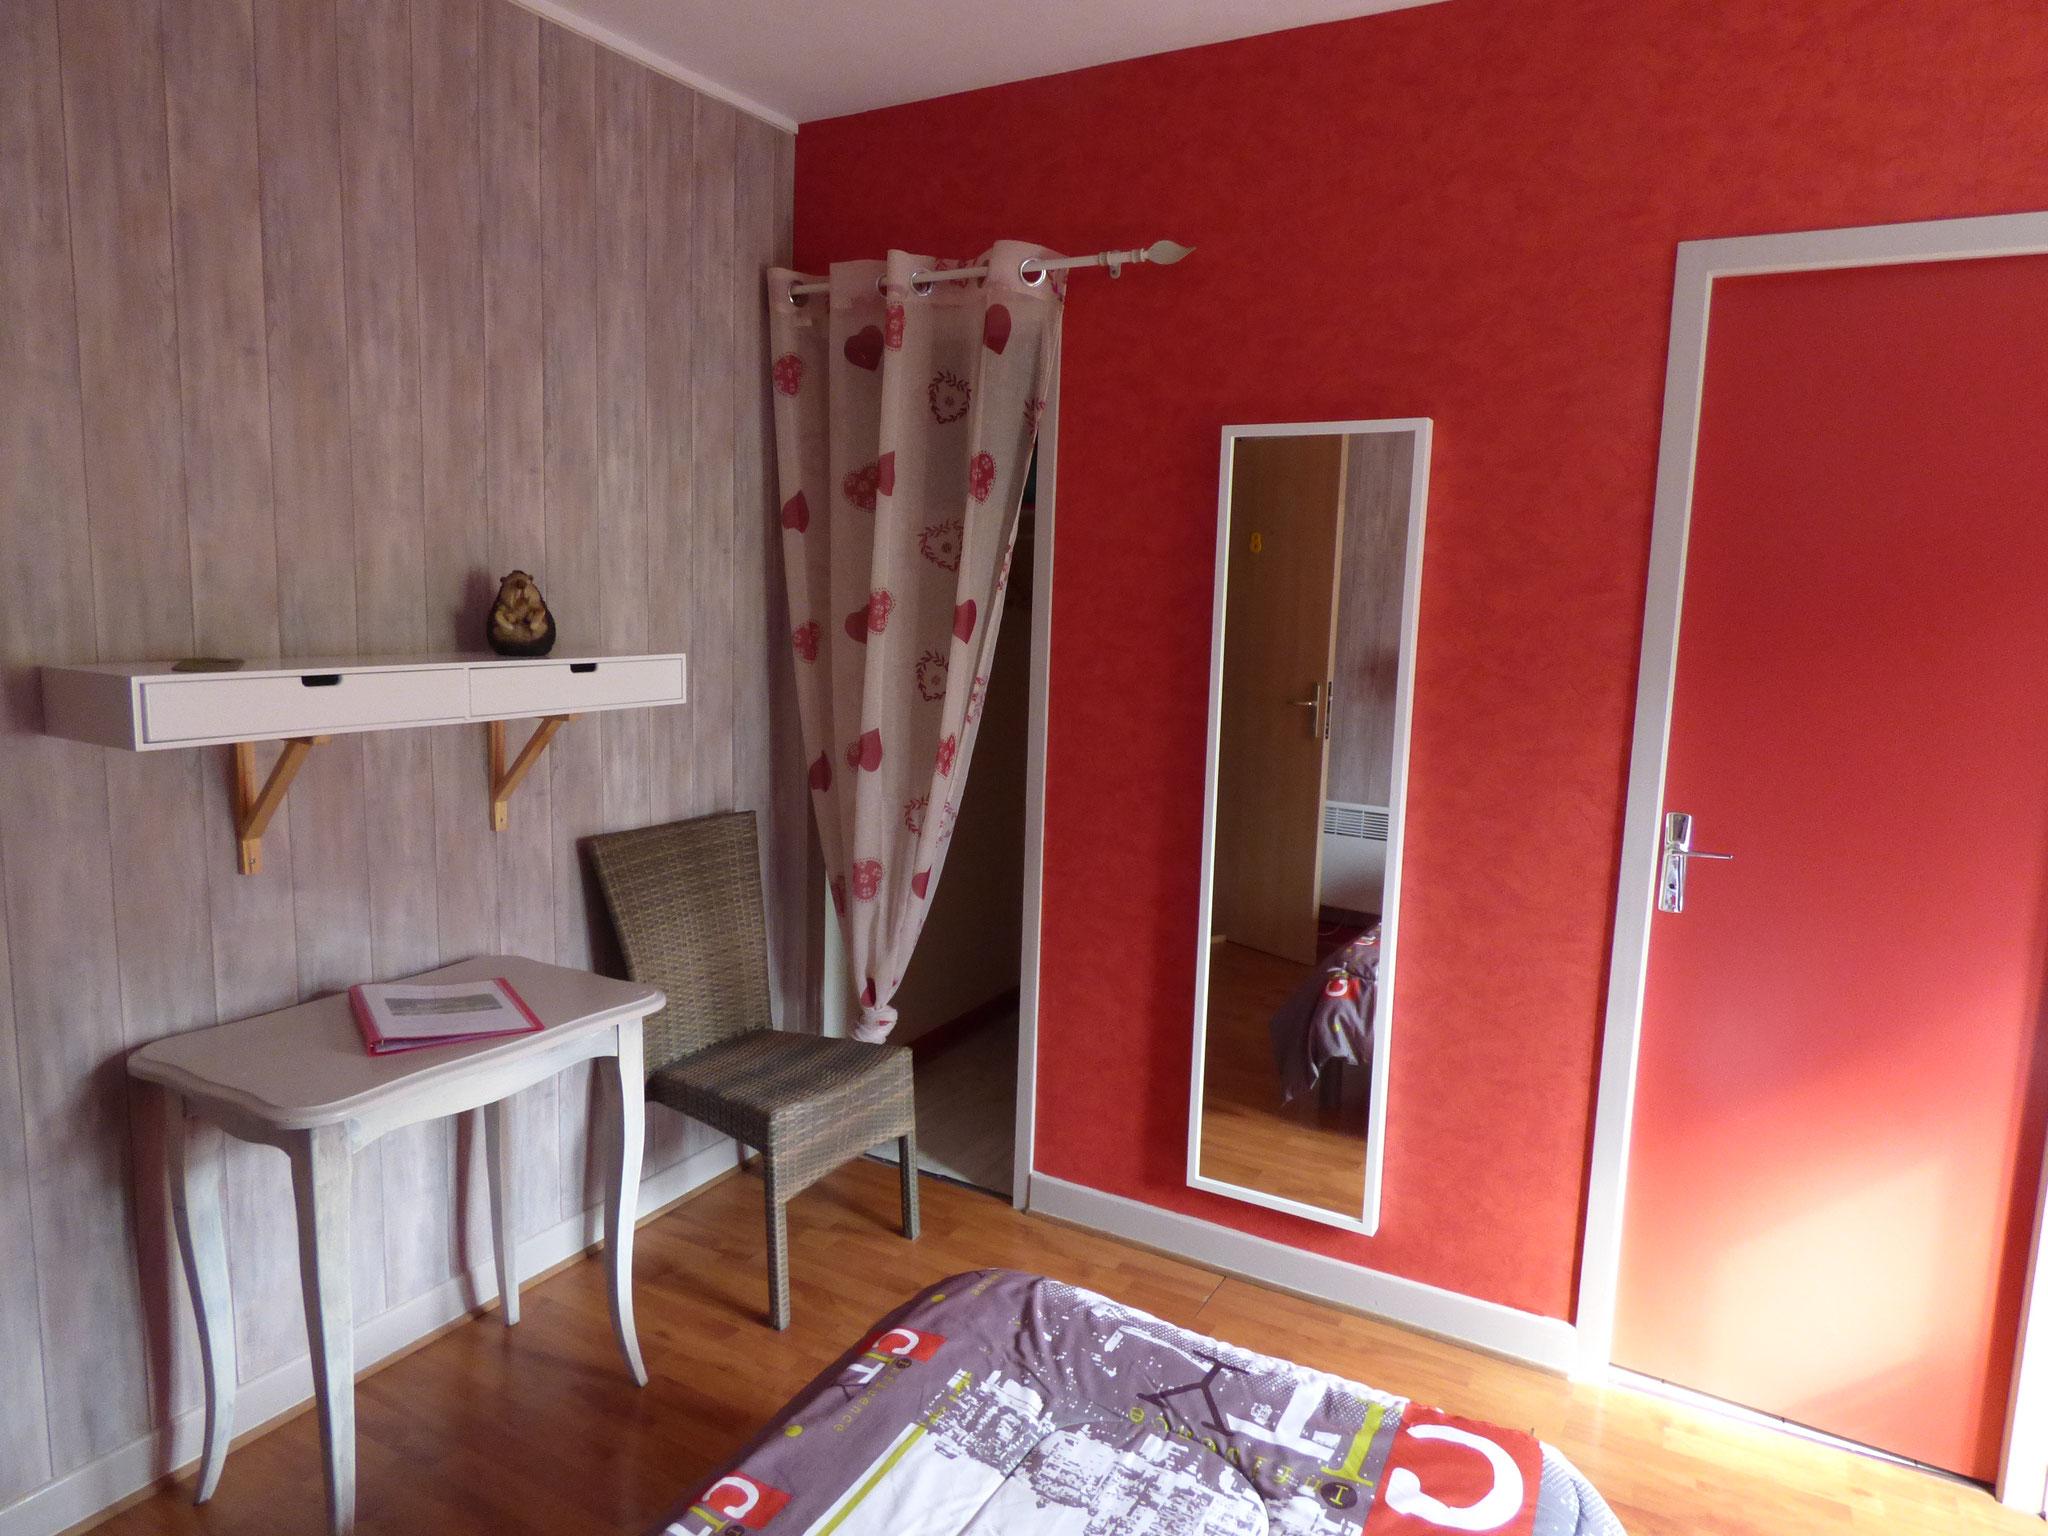 Chambre 2 lits simples 15 m²